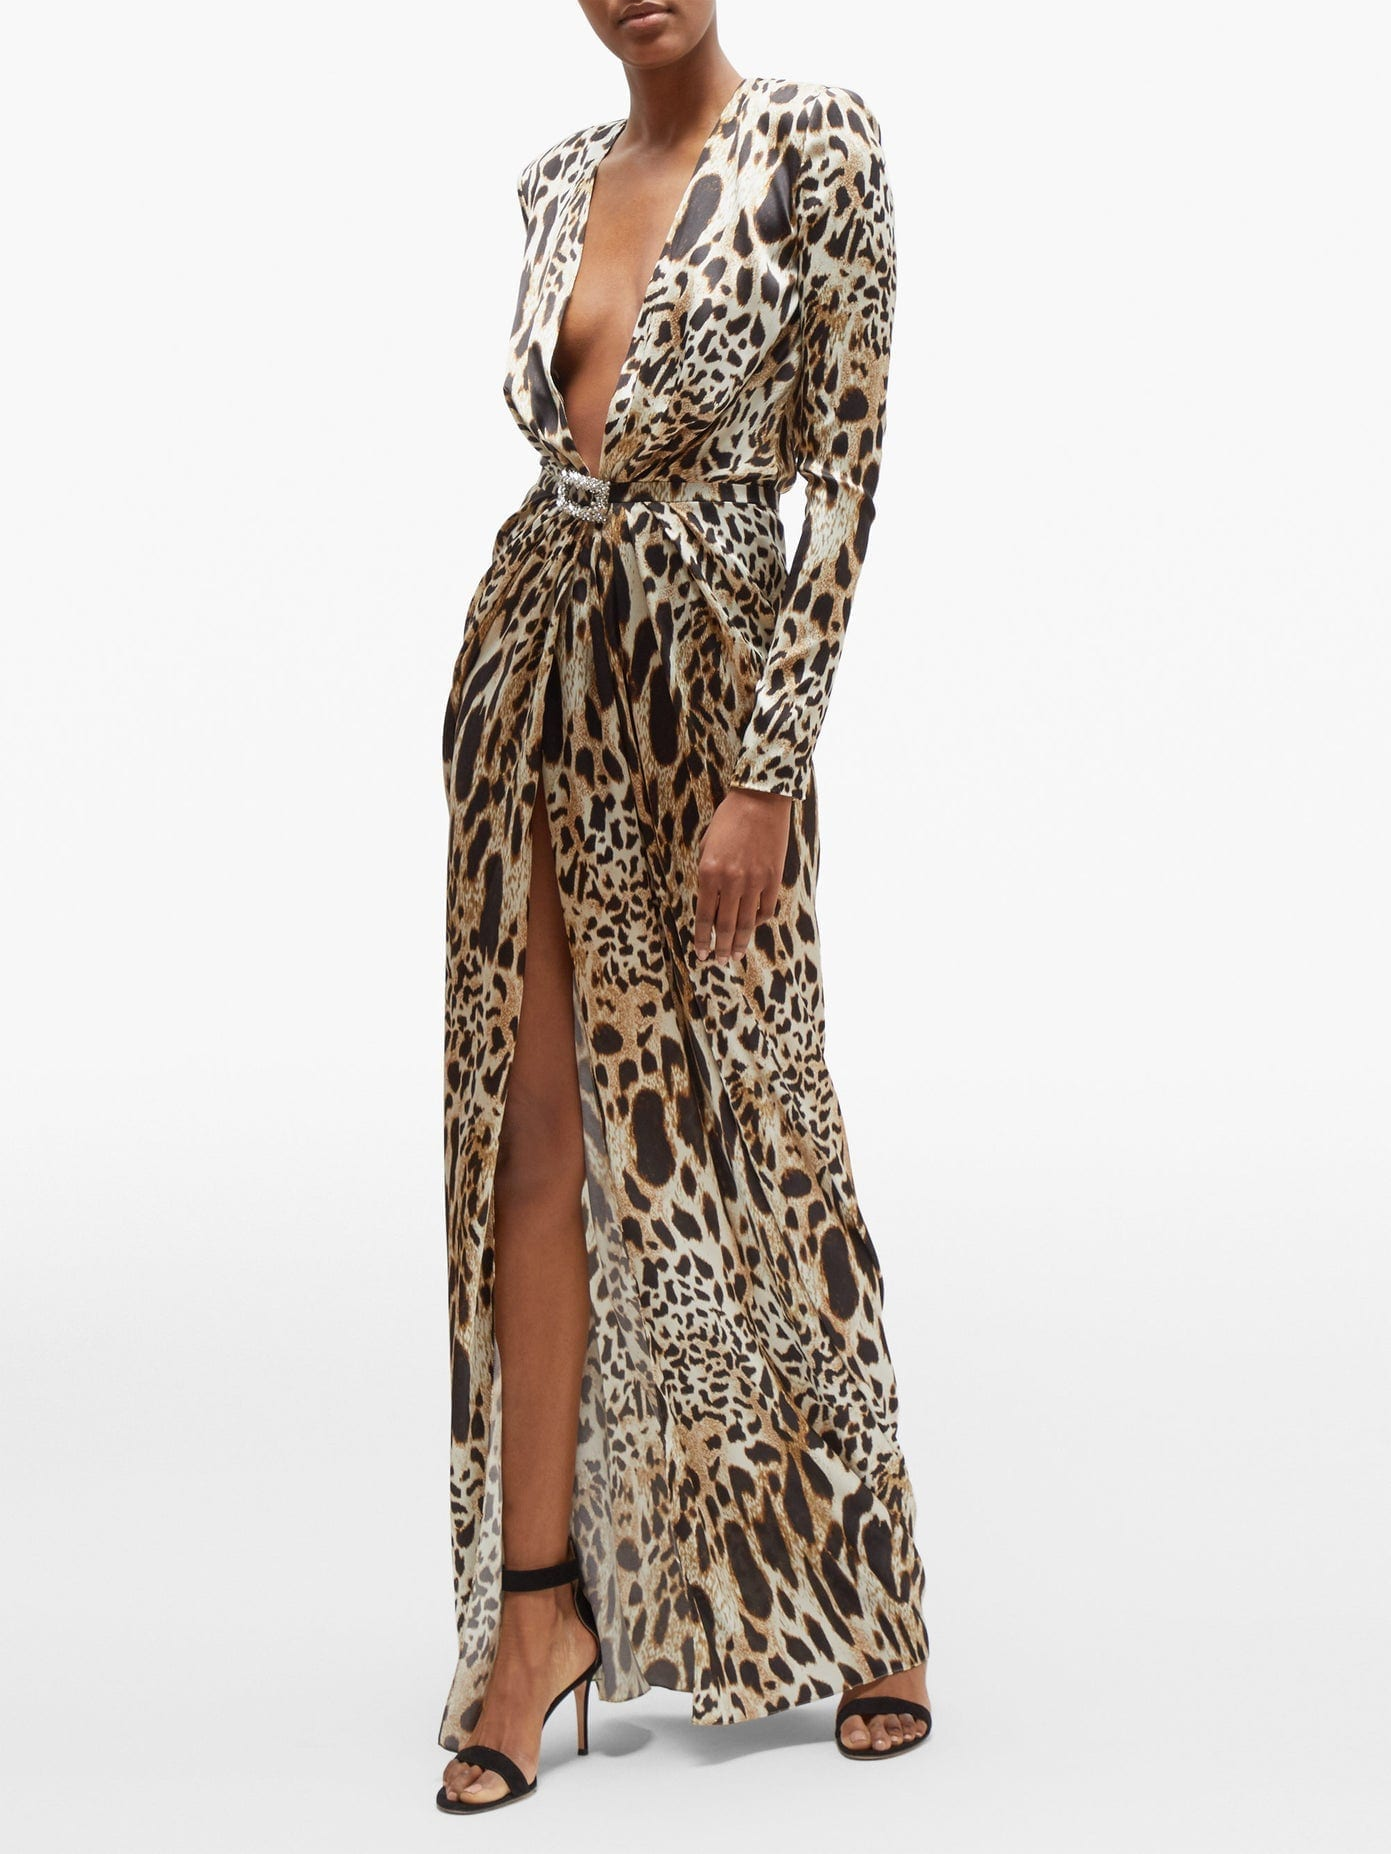 ALEXANDRE VAUTHIER Crystal-Embellished Lynx-Print Satin Gown